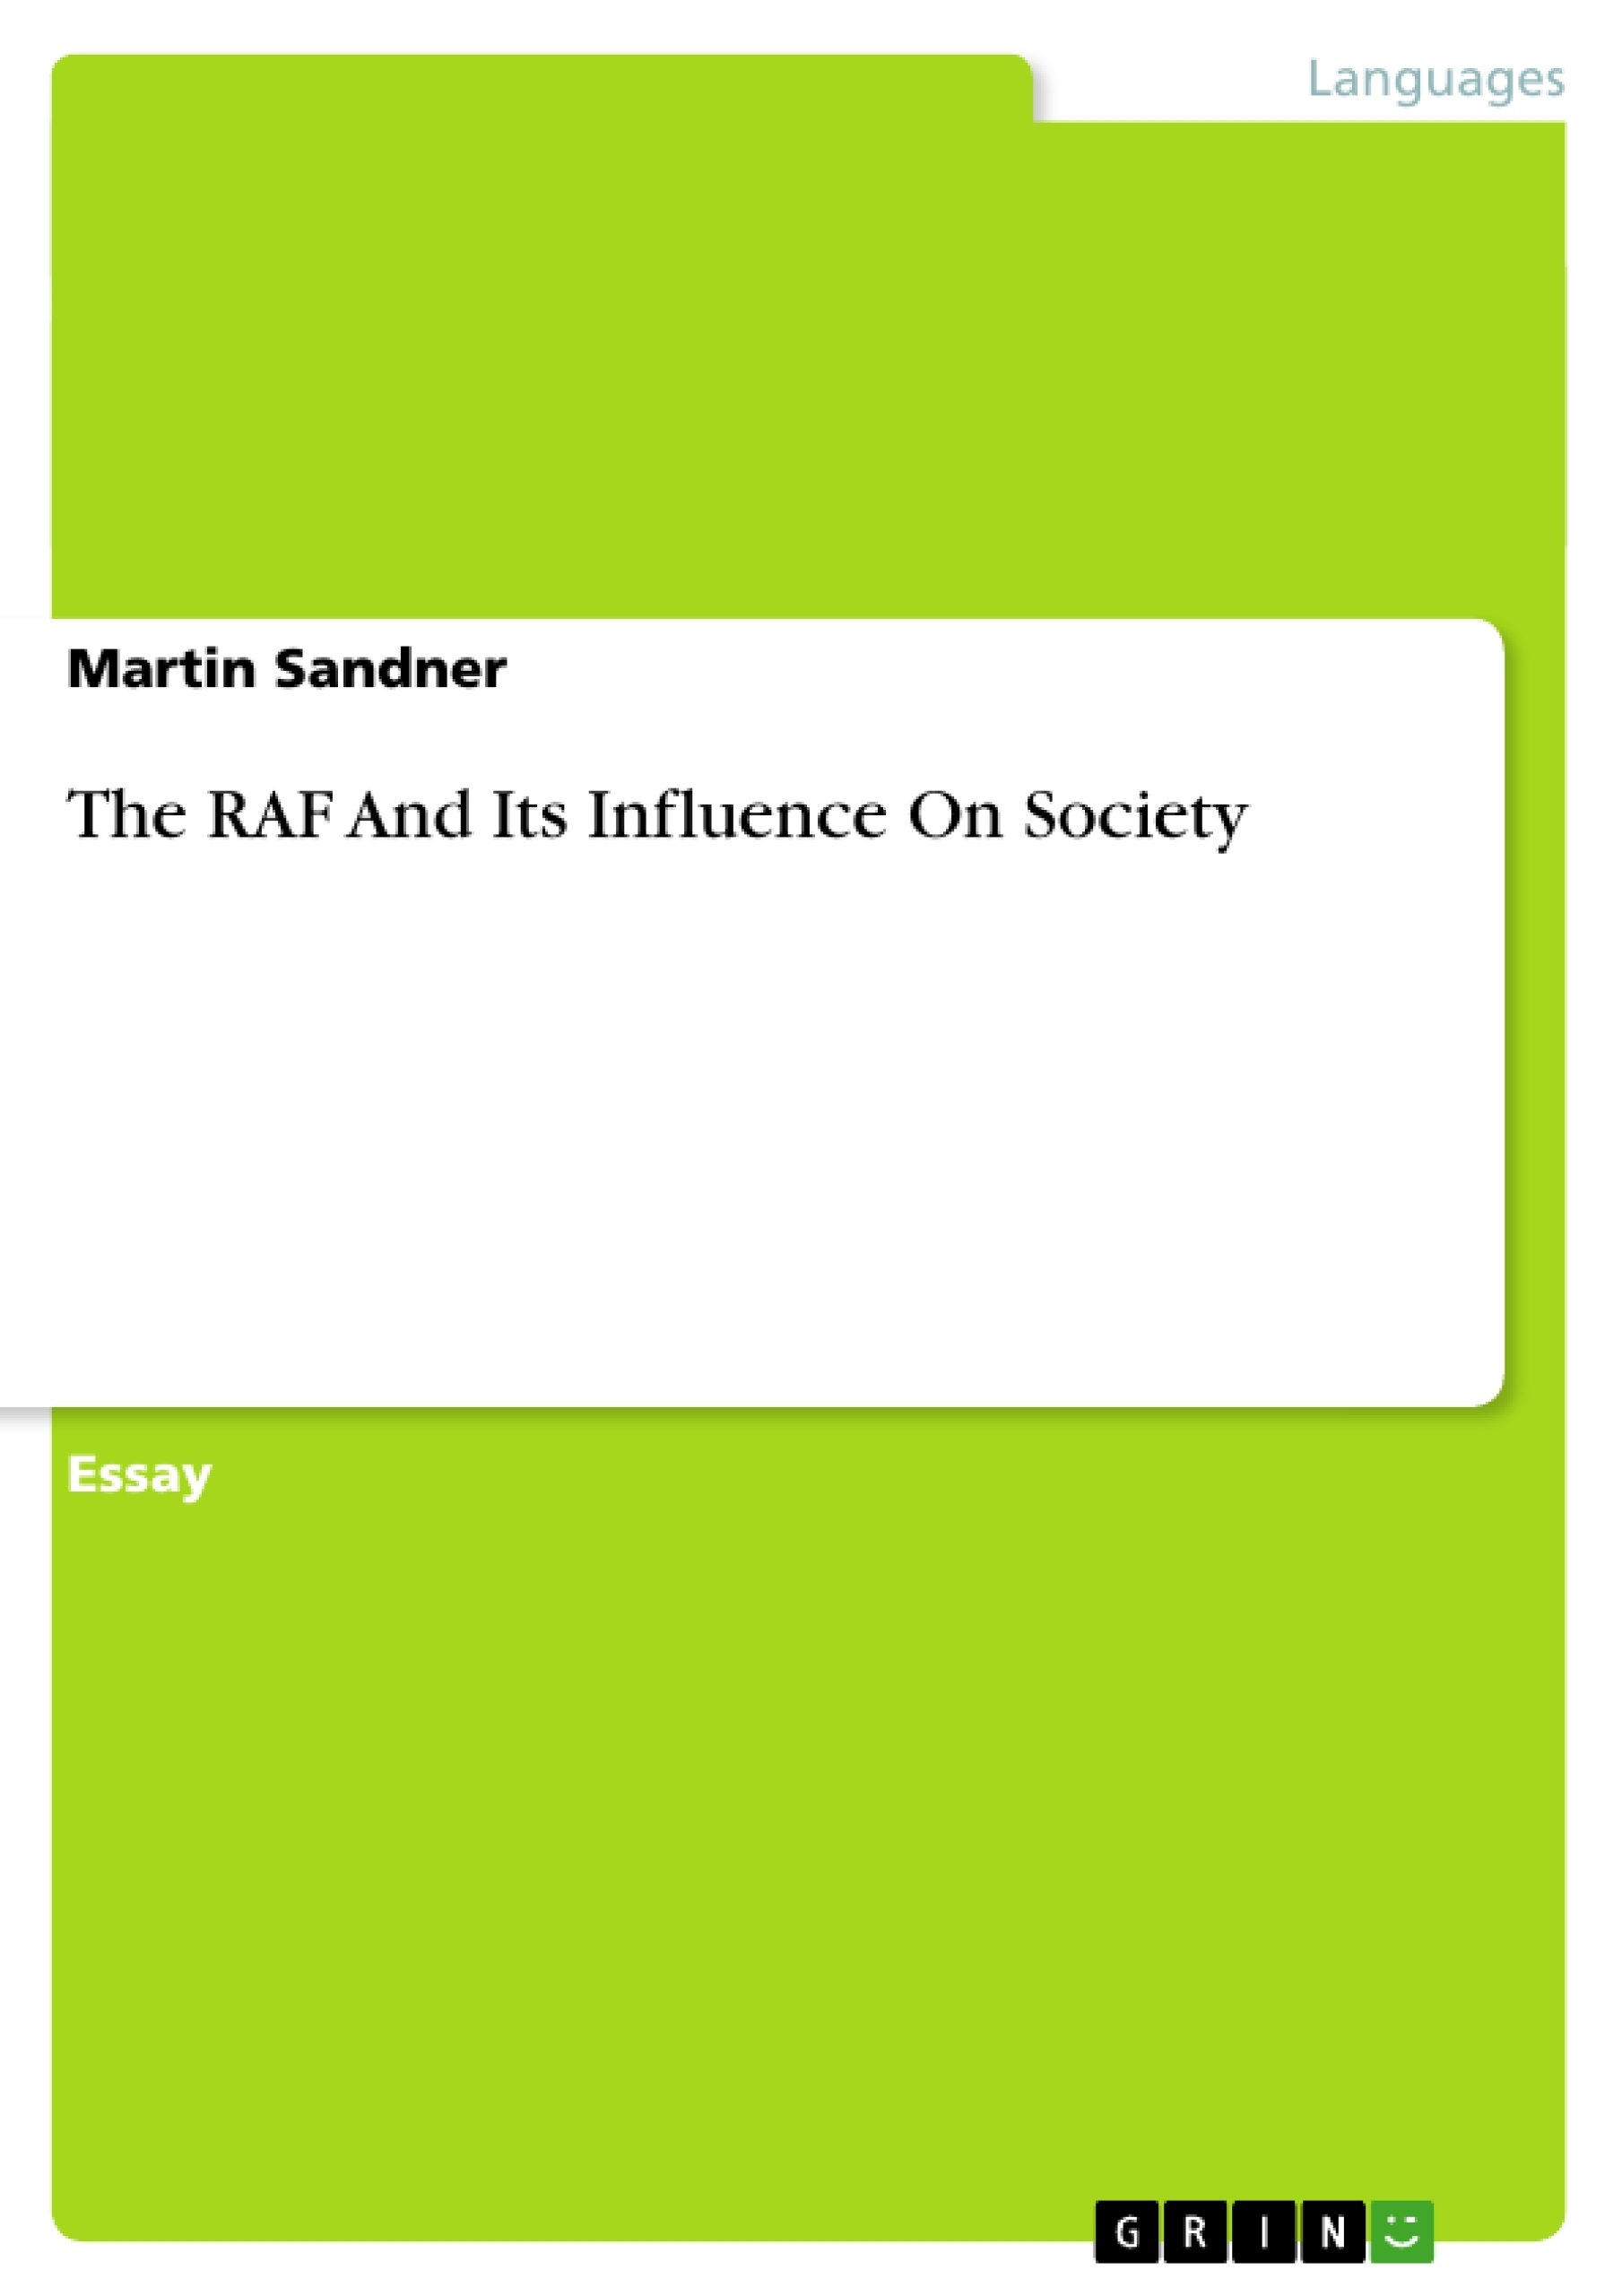 Title: The RAF And Its Influence On Society